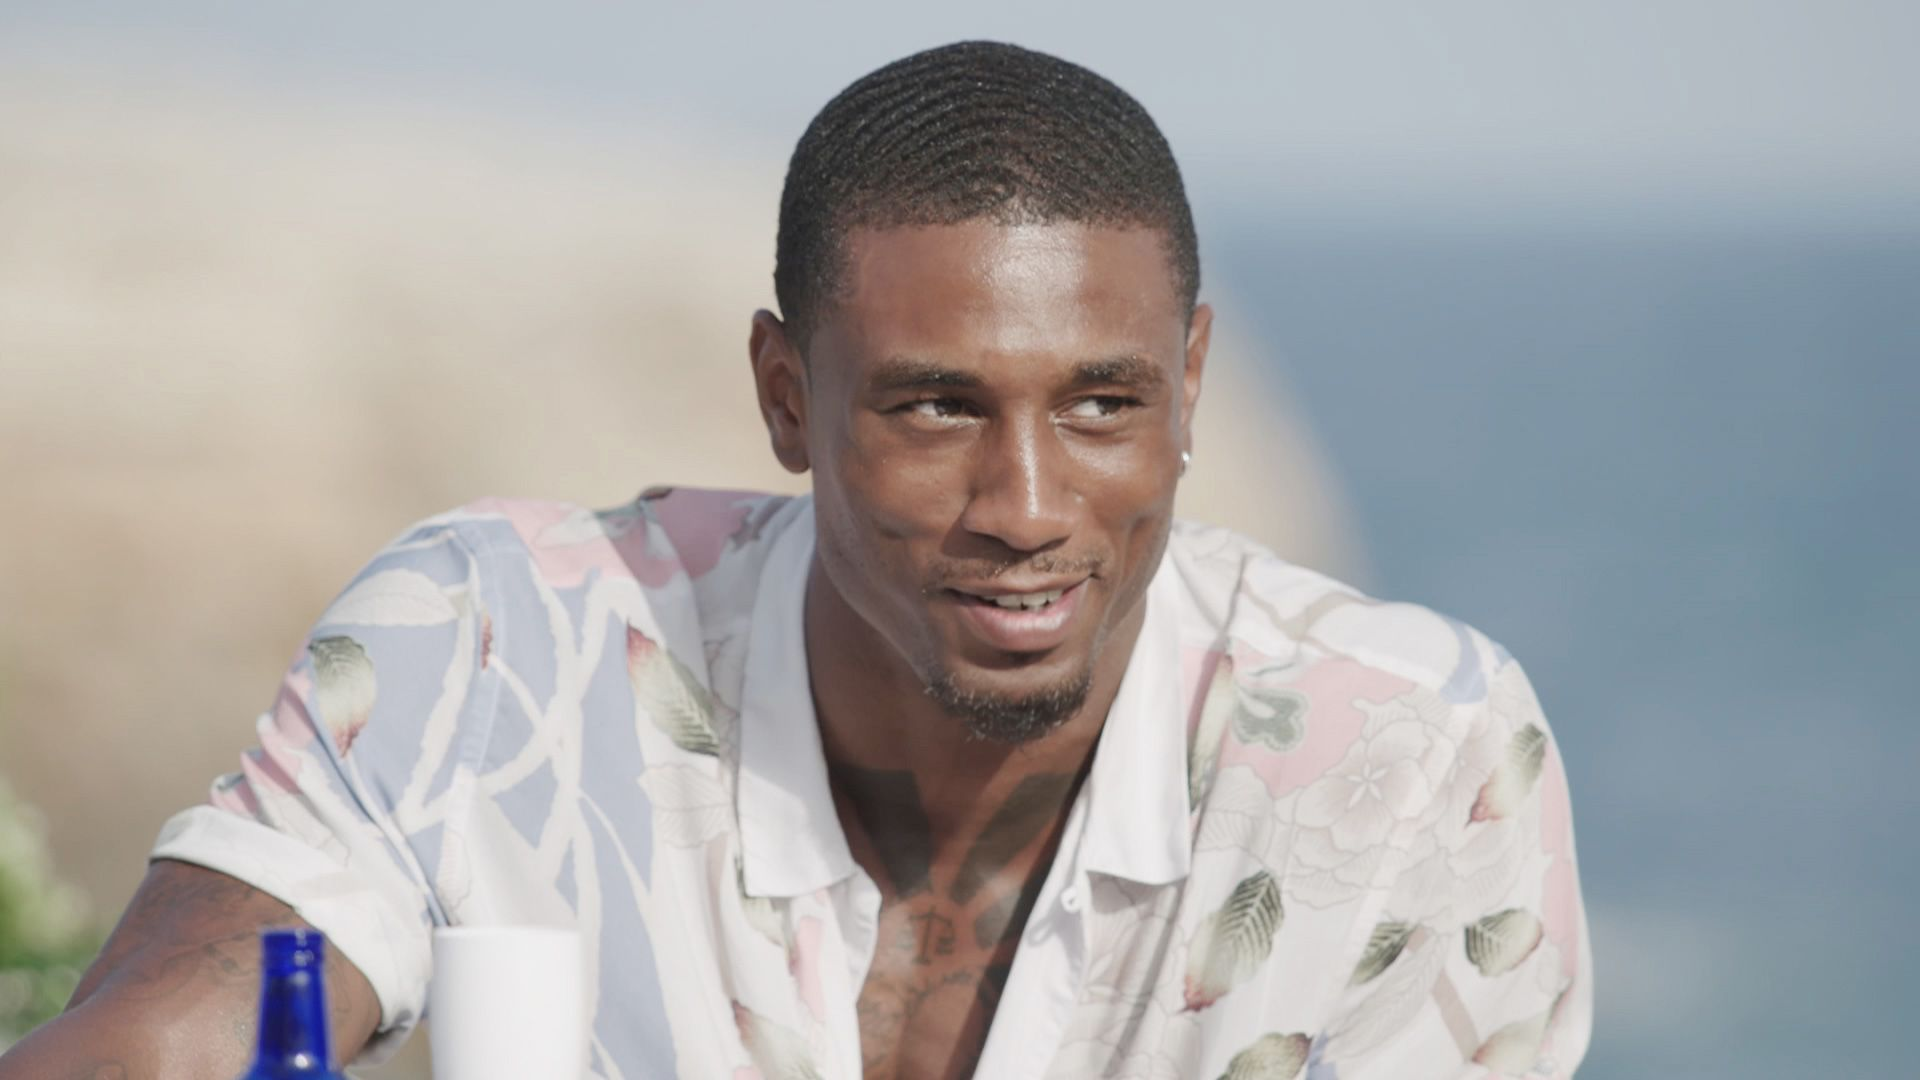 Love Island's Ovie Soko reveals the truth about Amber Gill romance